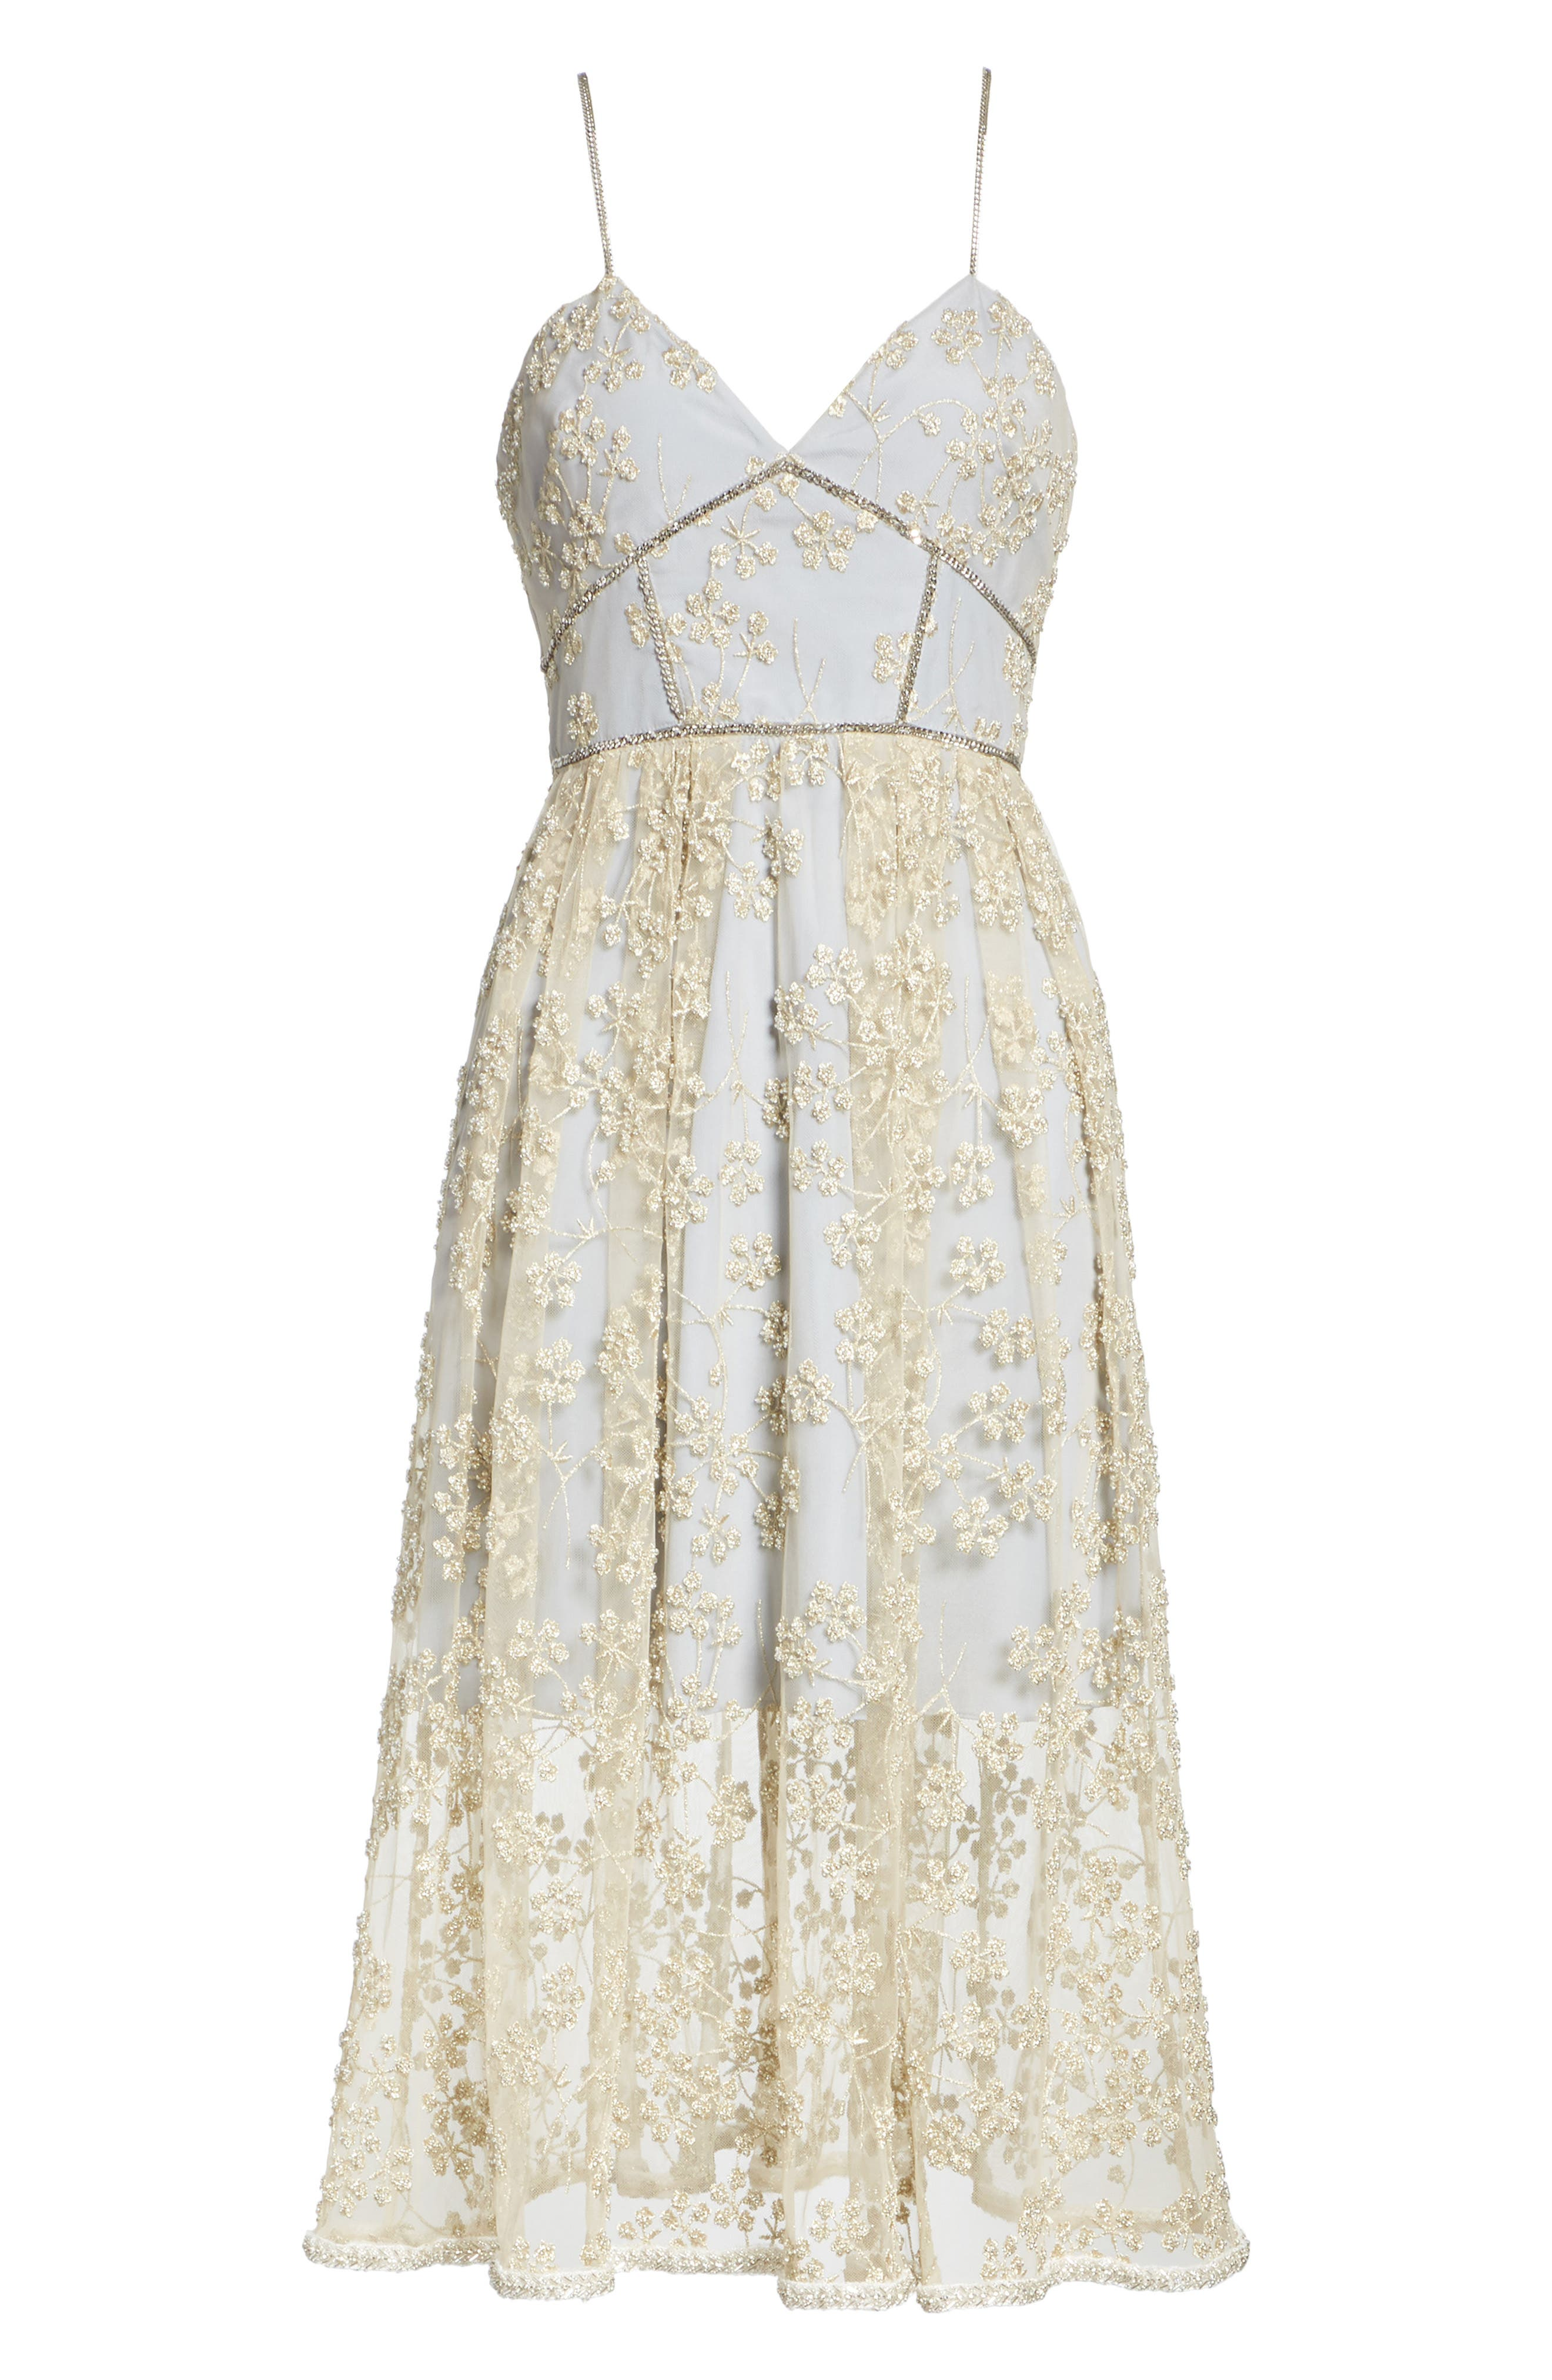 Metallic Floral Embroidery Chain Strap Dress,                             Alternate thumbnail 6, color,                             GOLD/ GREY